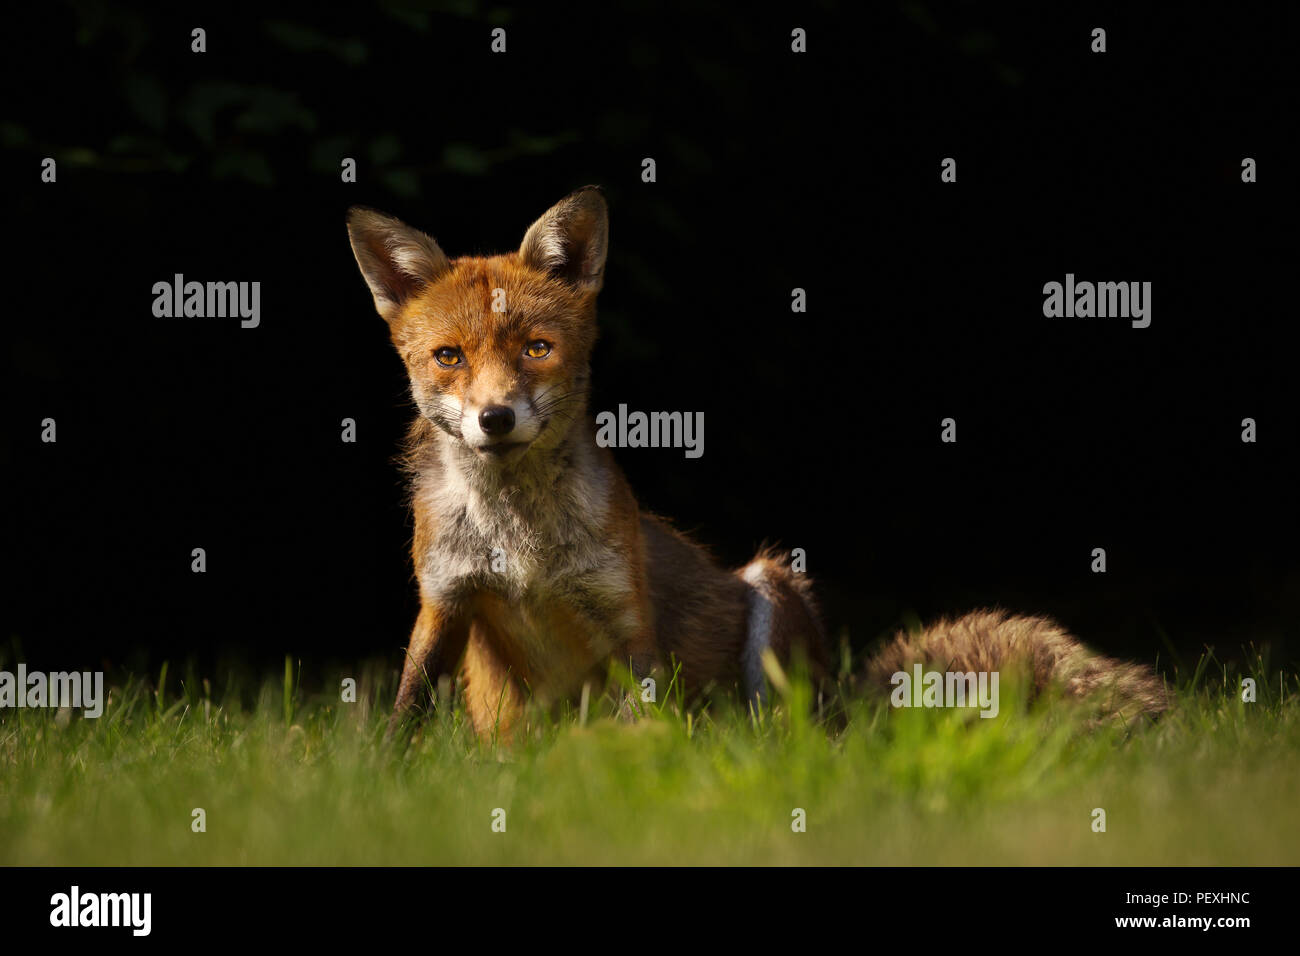 Close up of a red fox sitting on the grass against black background, England. - Stock Image